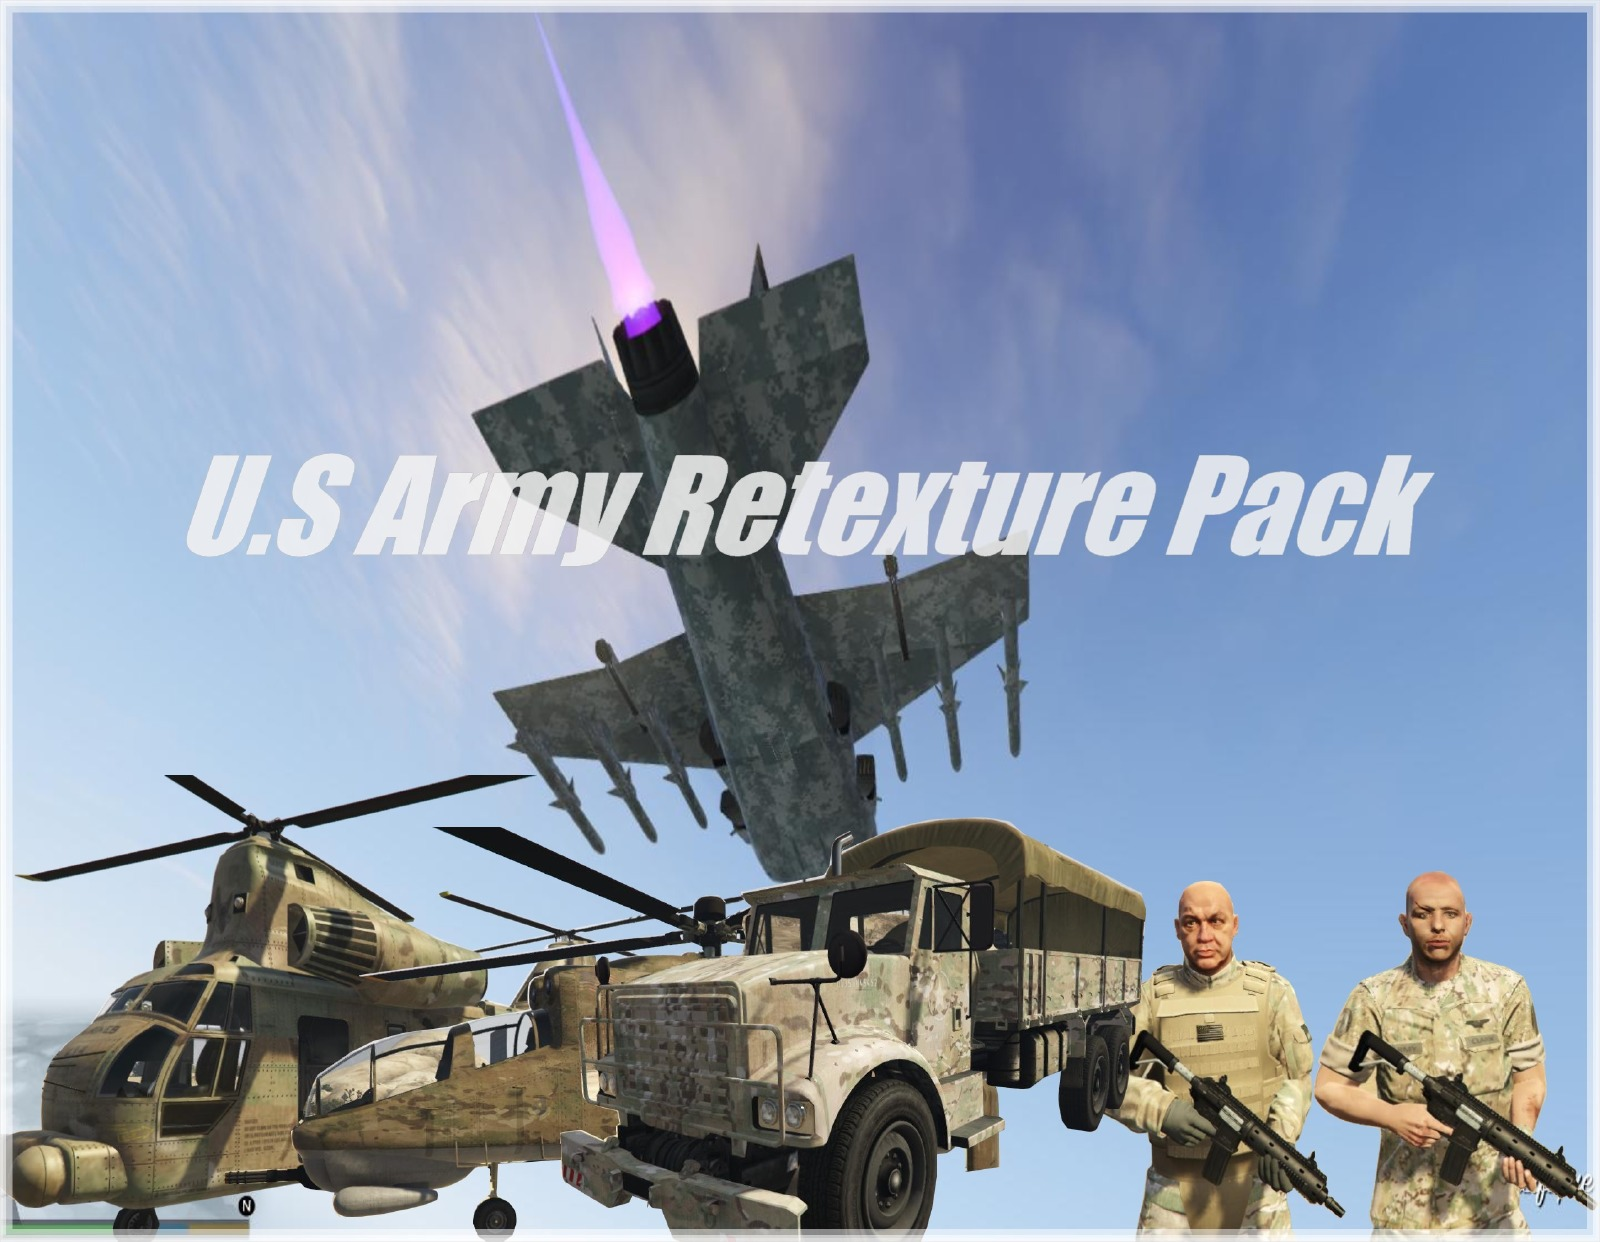 Real U.S Army Retexture Pack - GTA5